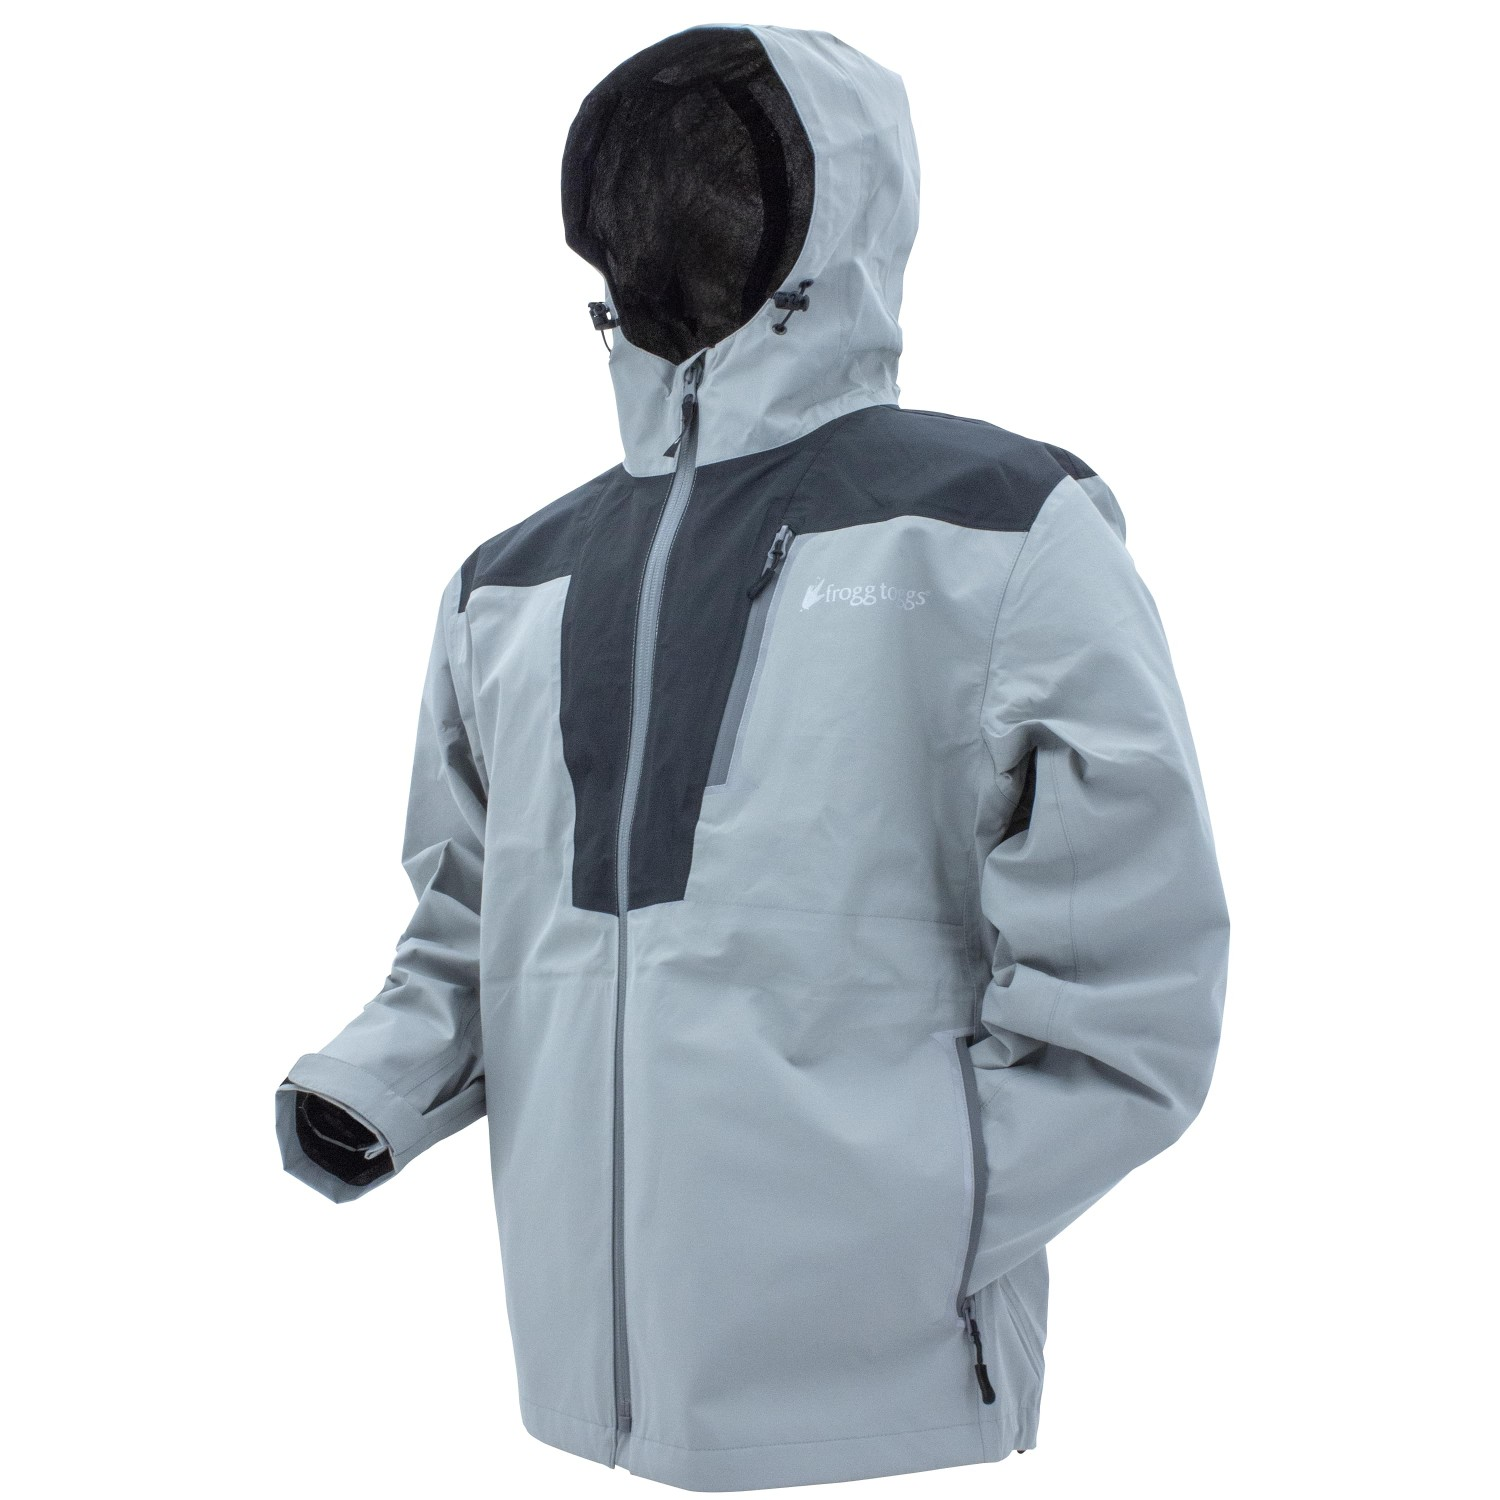 Frogg Toggs Rockslide Jacket Gray Carbon Large